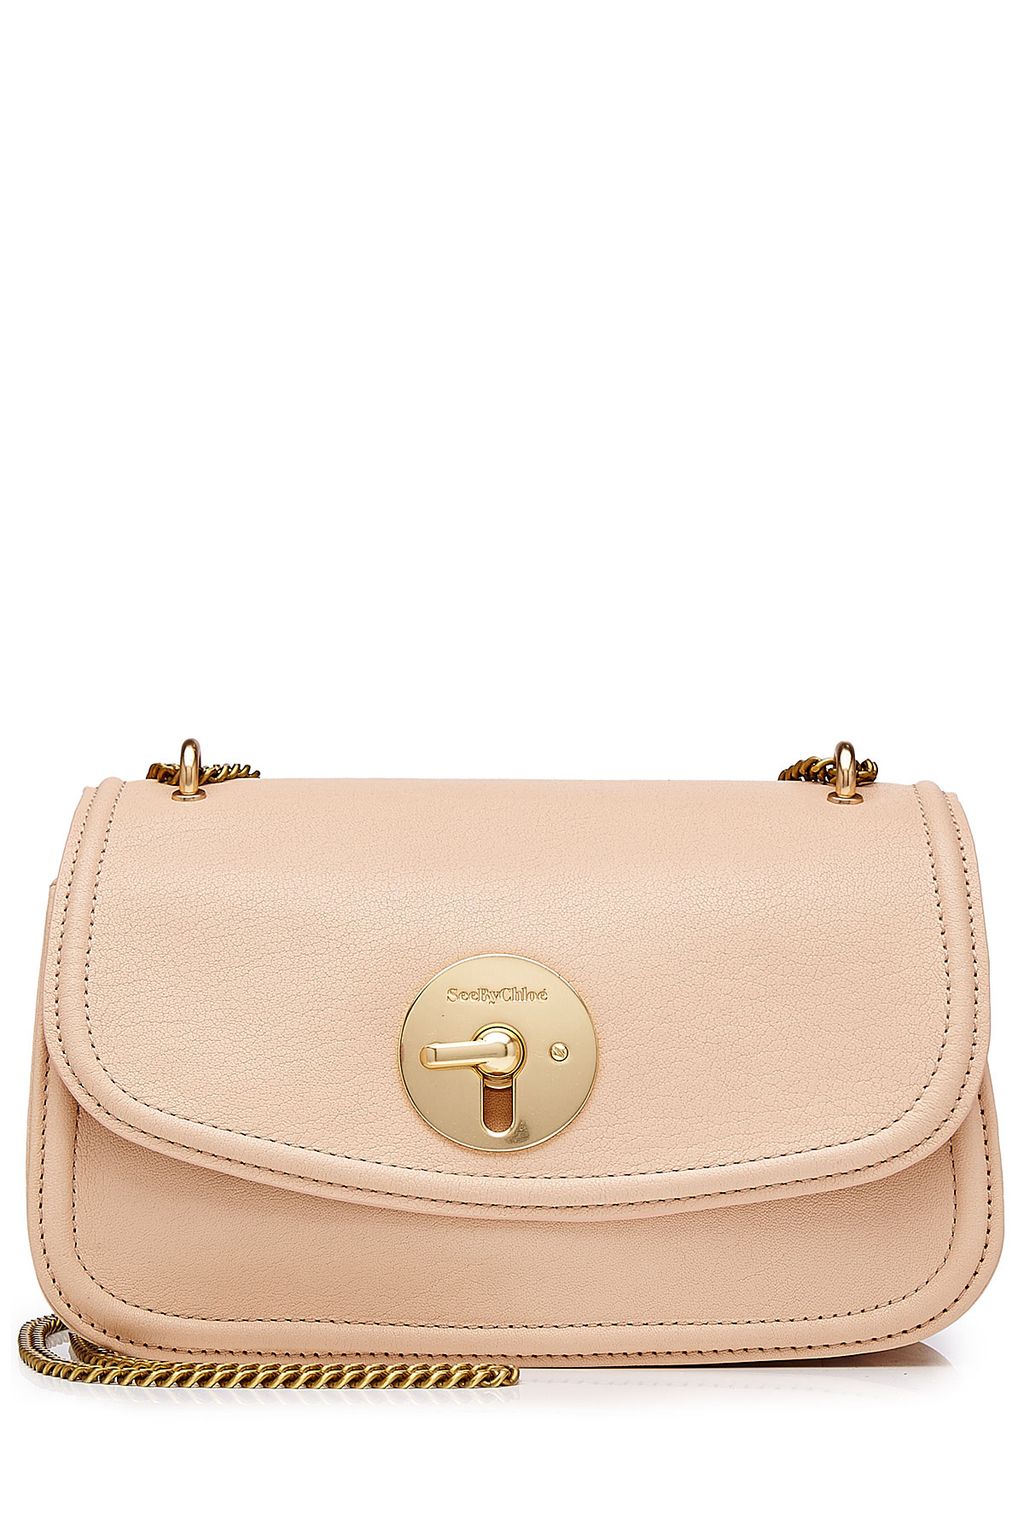 Leather Shoulder Bag Beige - predominant colour: nude; secondary colour: gold; occasions: casual, creative work; type of pattern: standard; style: shoulder; length: shoulder (tucks under arm); size: standard; material: leather; pattern: plain; finish: plain; wardrobe: investment; season: a/w 2016